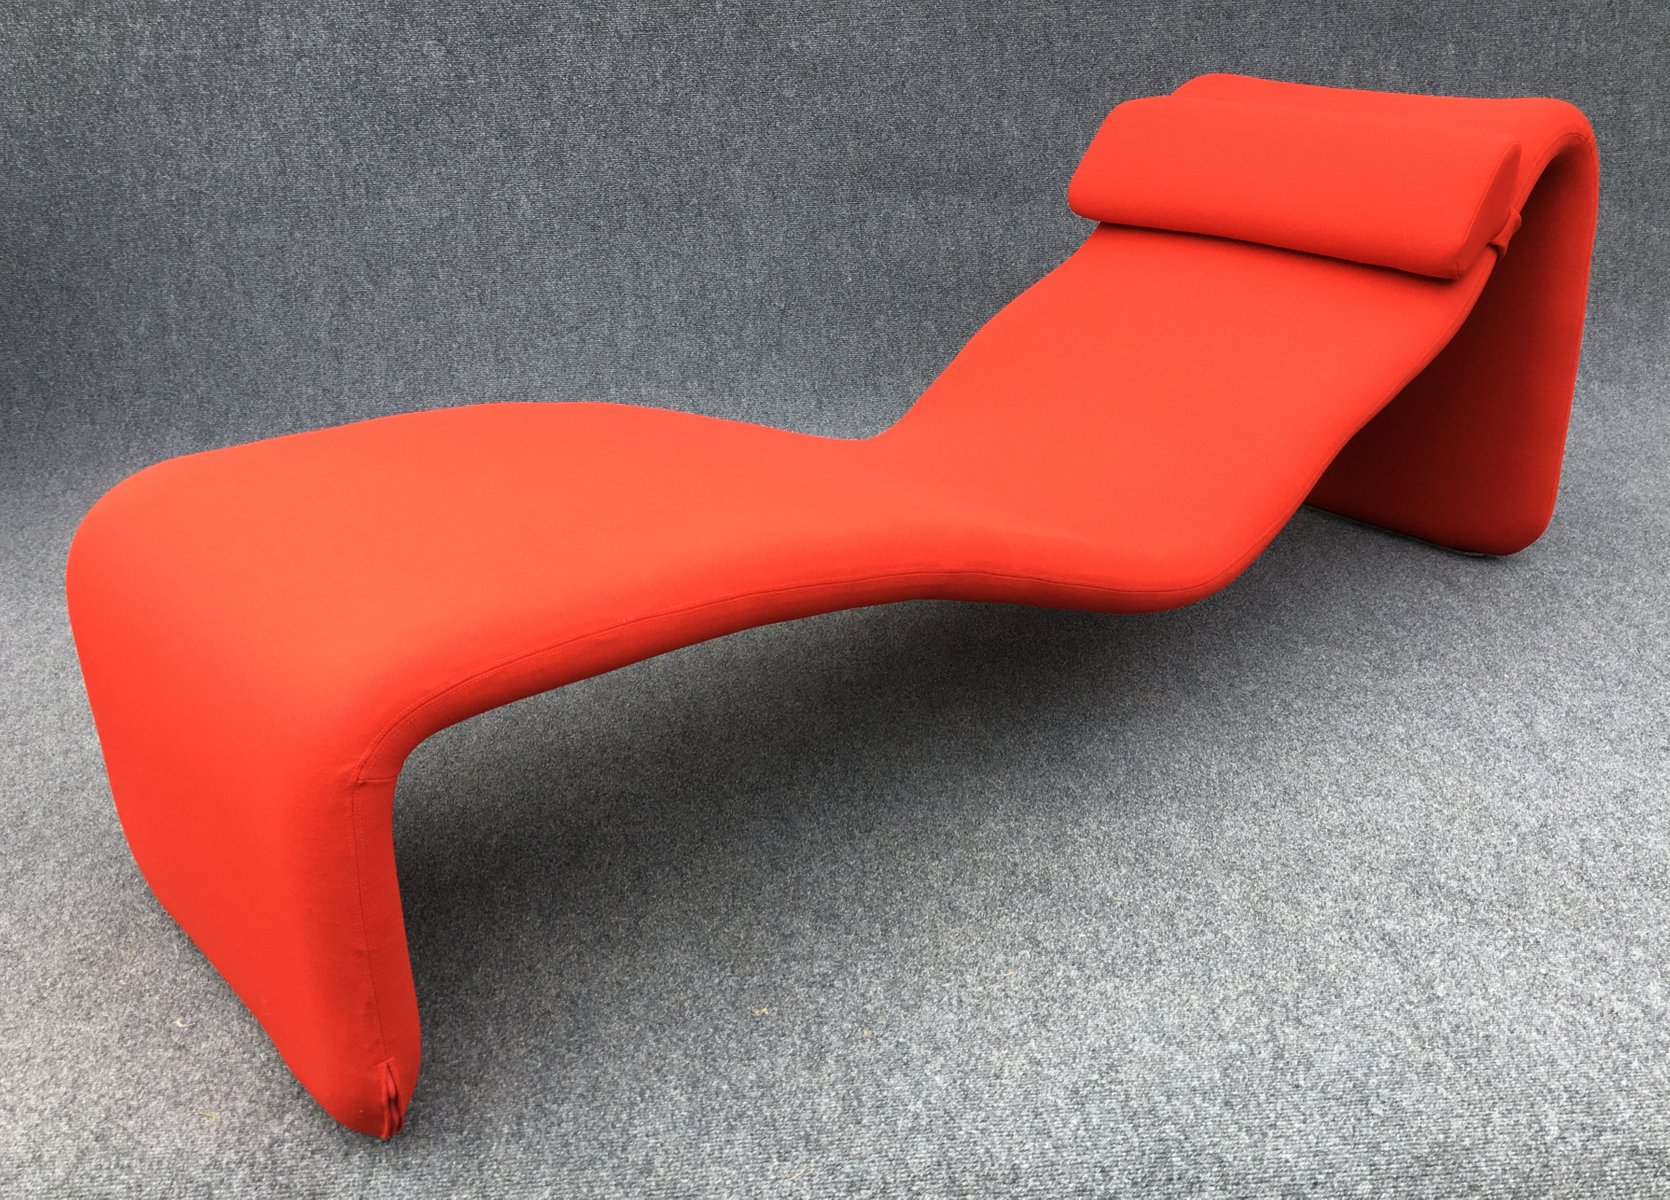 red djinn chaise lounge by olivier mourgue for airborne s for  - red djinn chaise lounge by olivier mourgue for airborne s